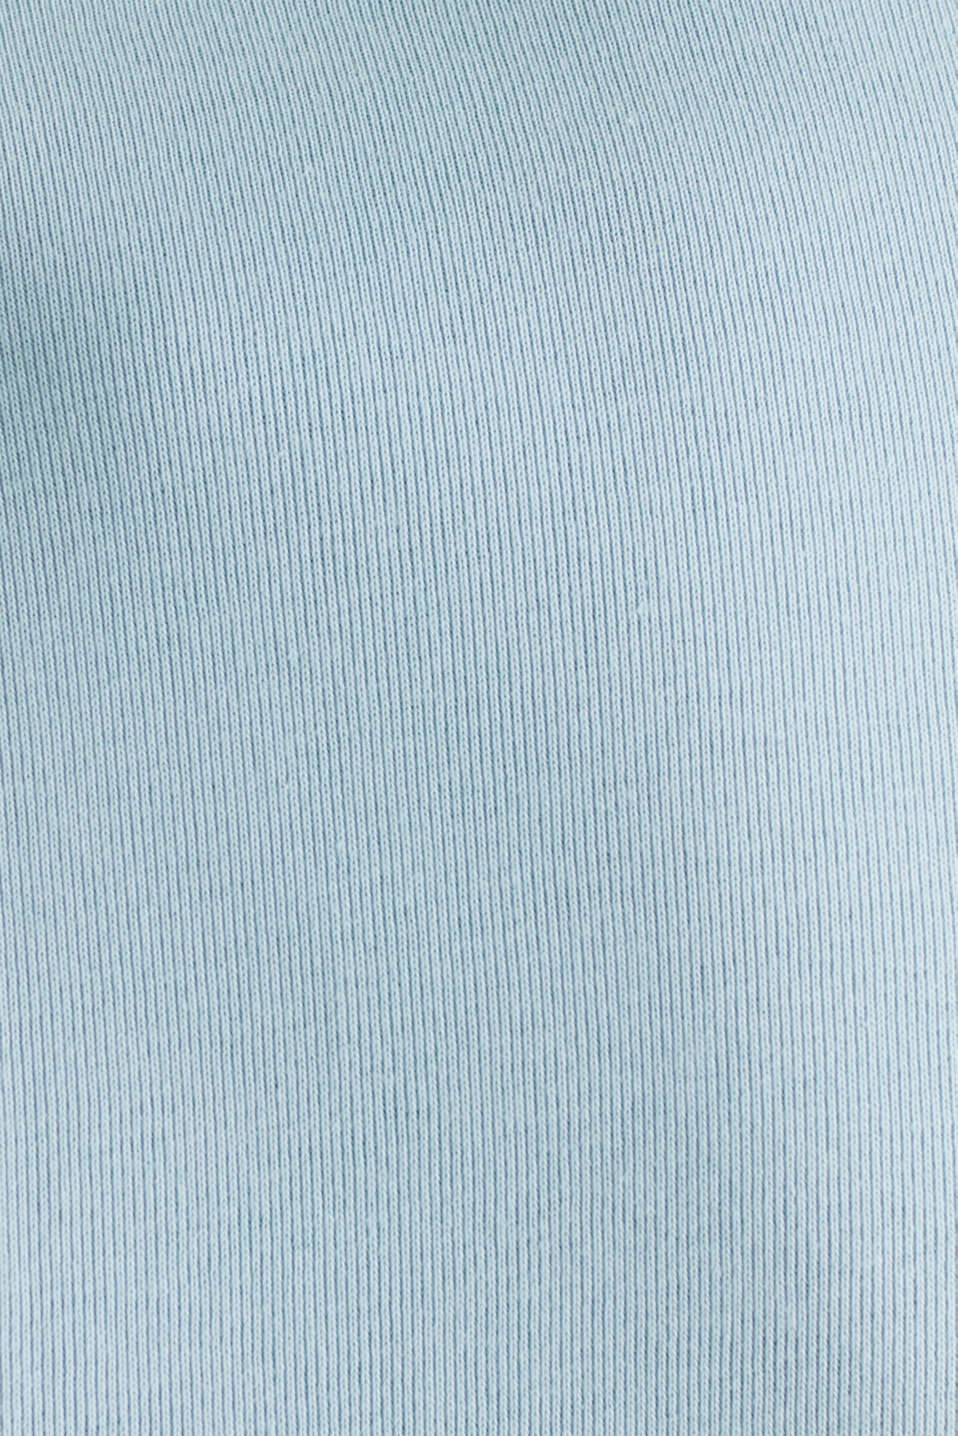 Ribbed jersey top made of 100% cotton, LIGHT BLUE, detail image number 4